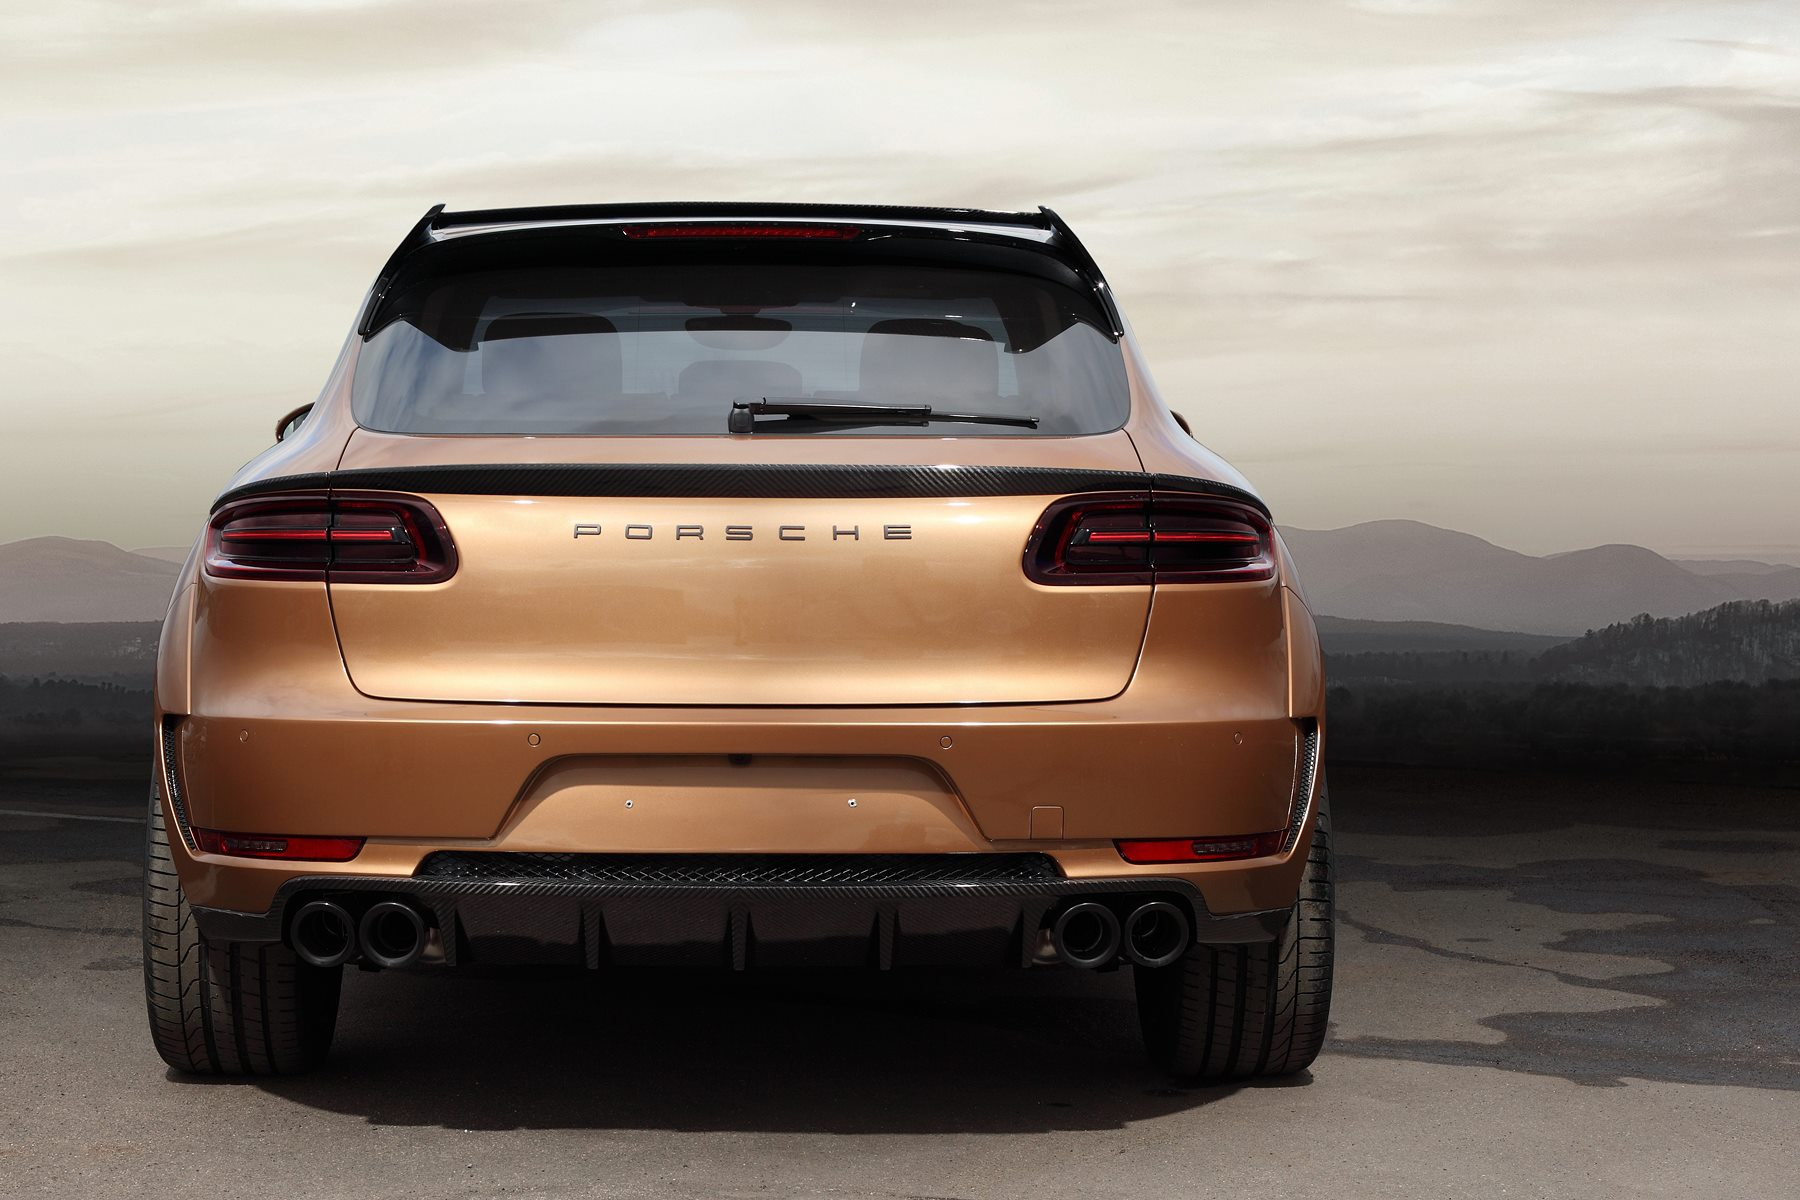 Macan Ursa By Topcar Has Gold Colored Carbon Fiber And Wood Interior Autoevolution